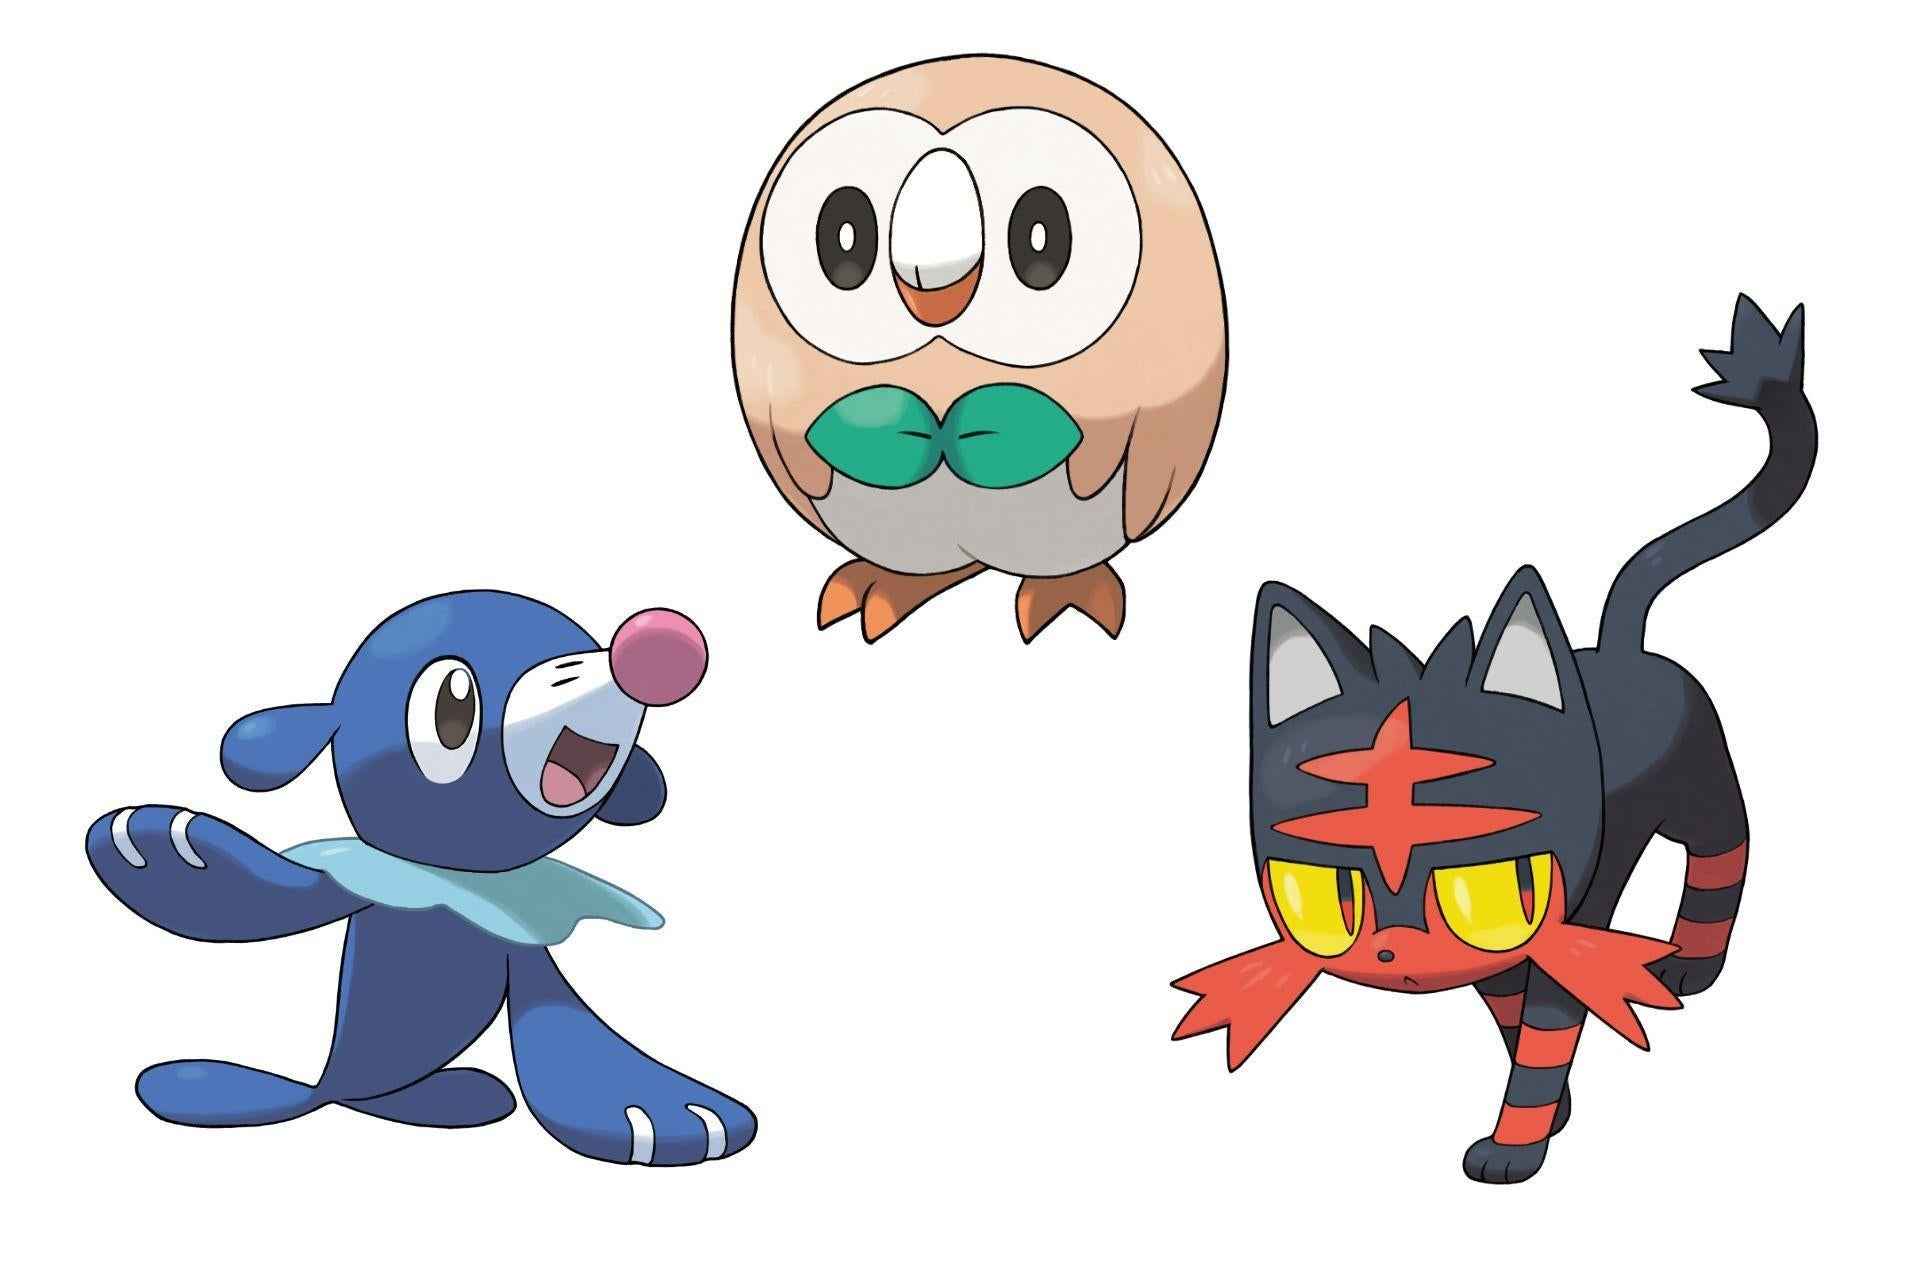 Pokemon Sun and Moon demo accidently reveals majoirty of Pokédex, including starter evolutions